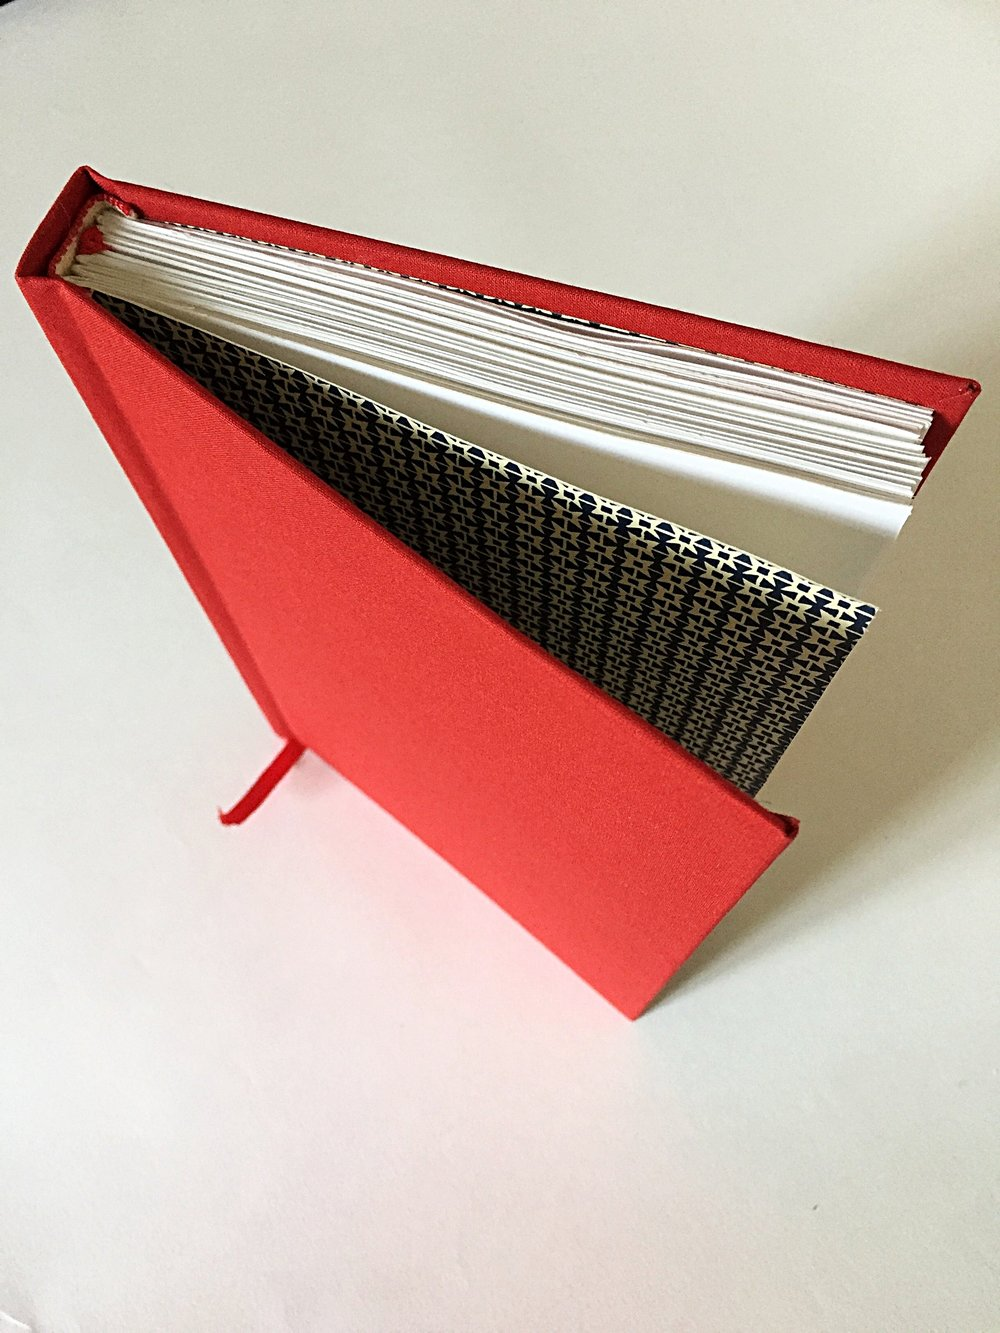 Hard-backed Multi-section book squared spine